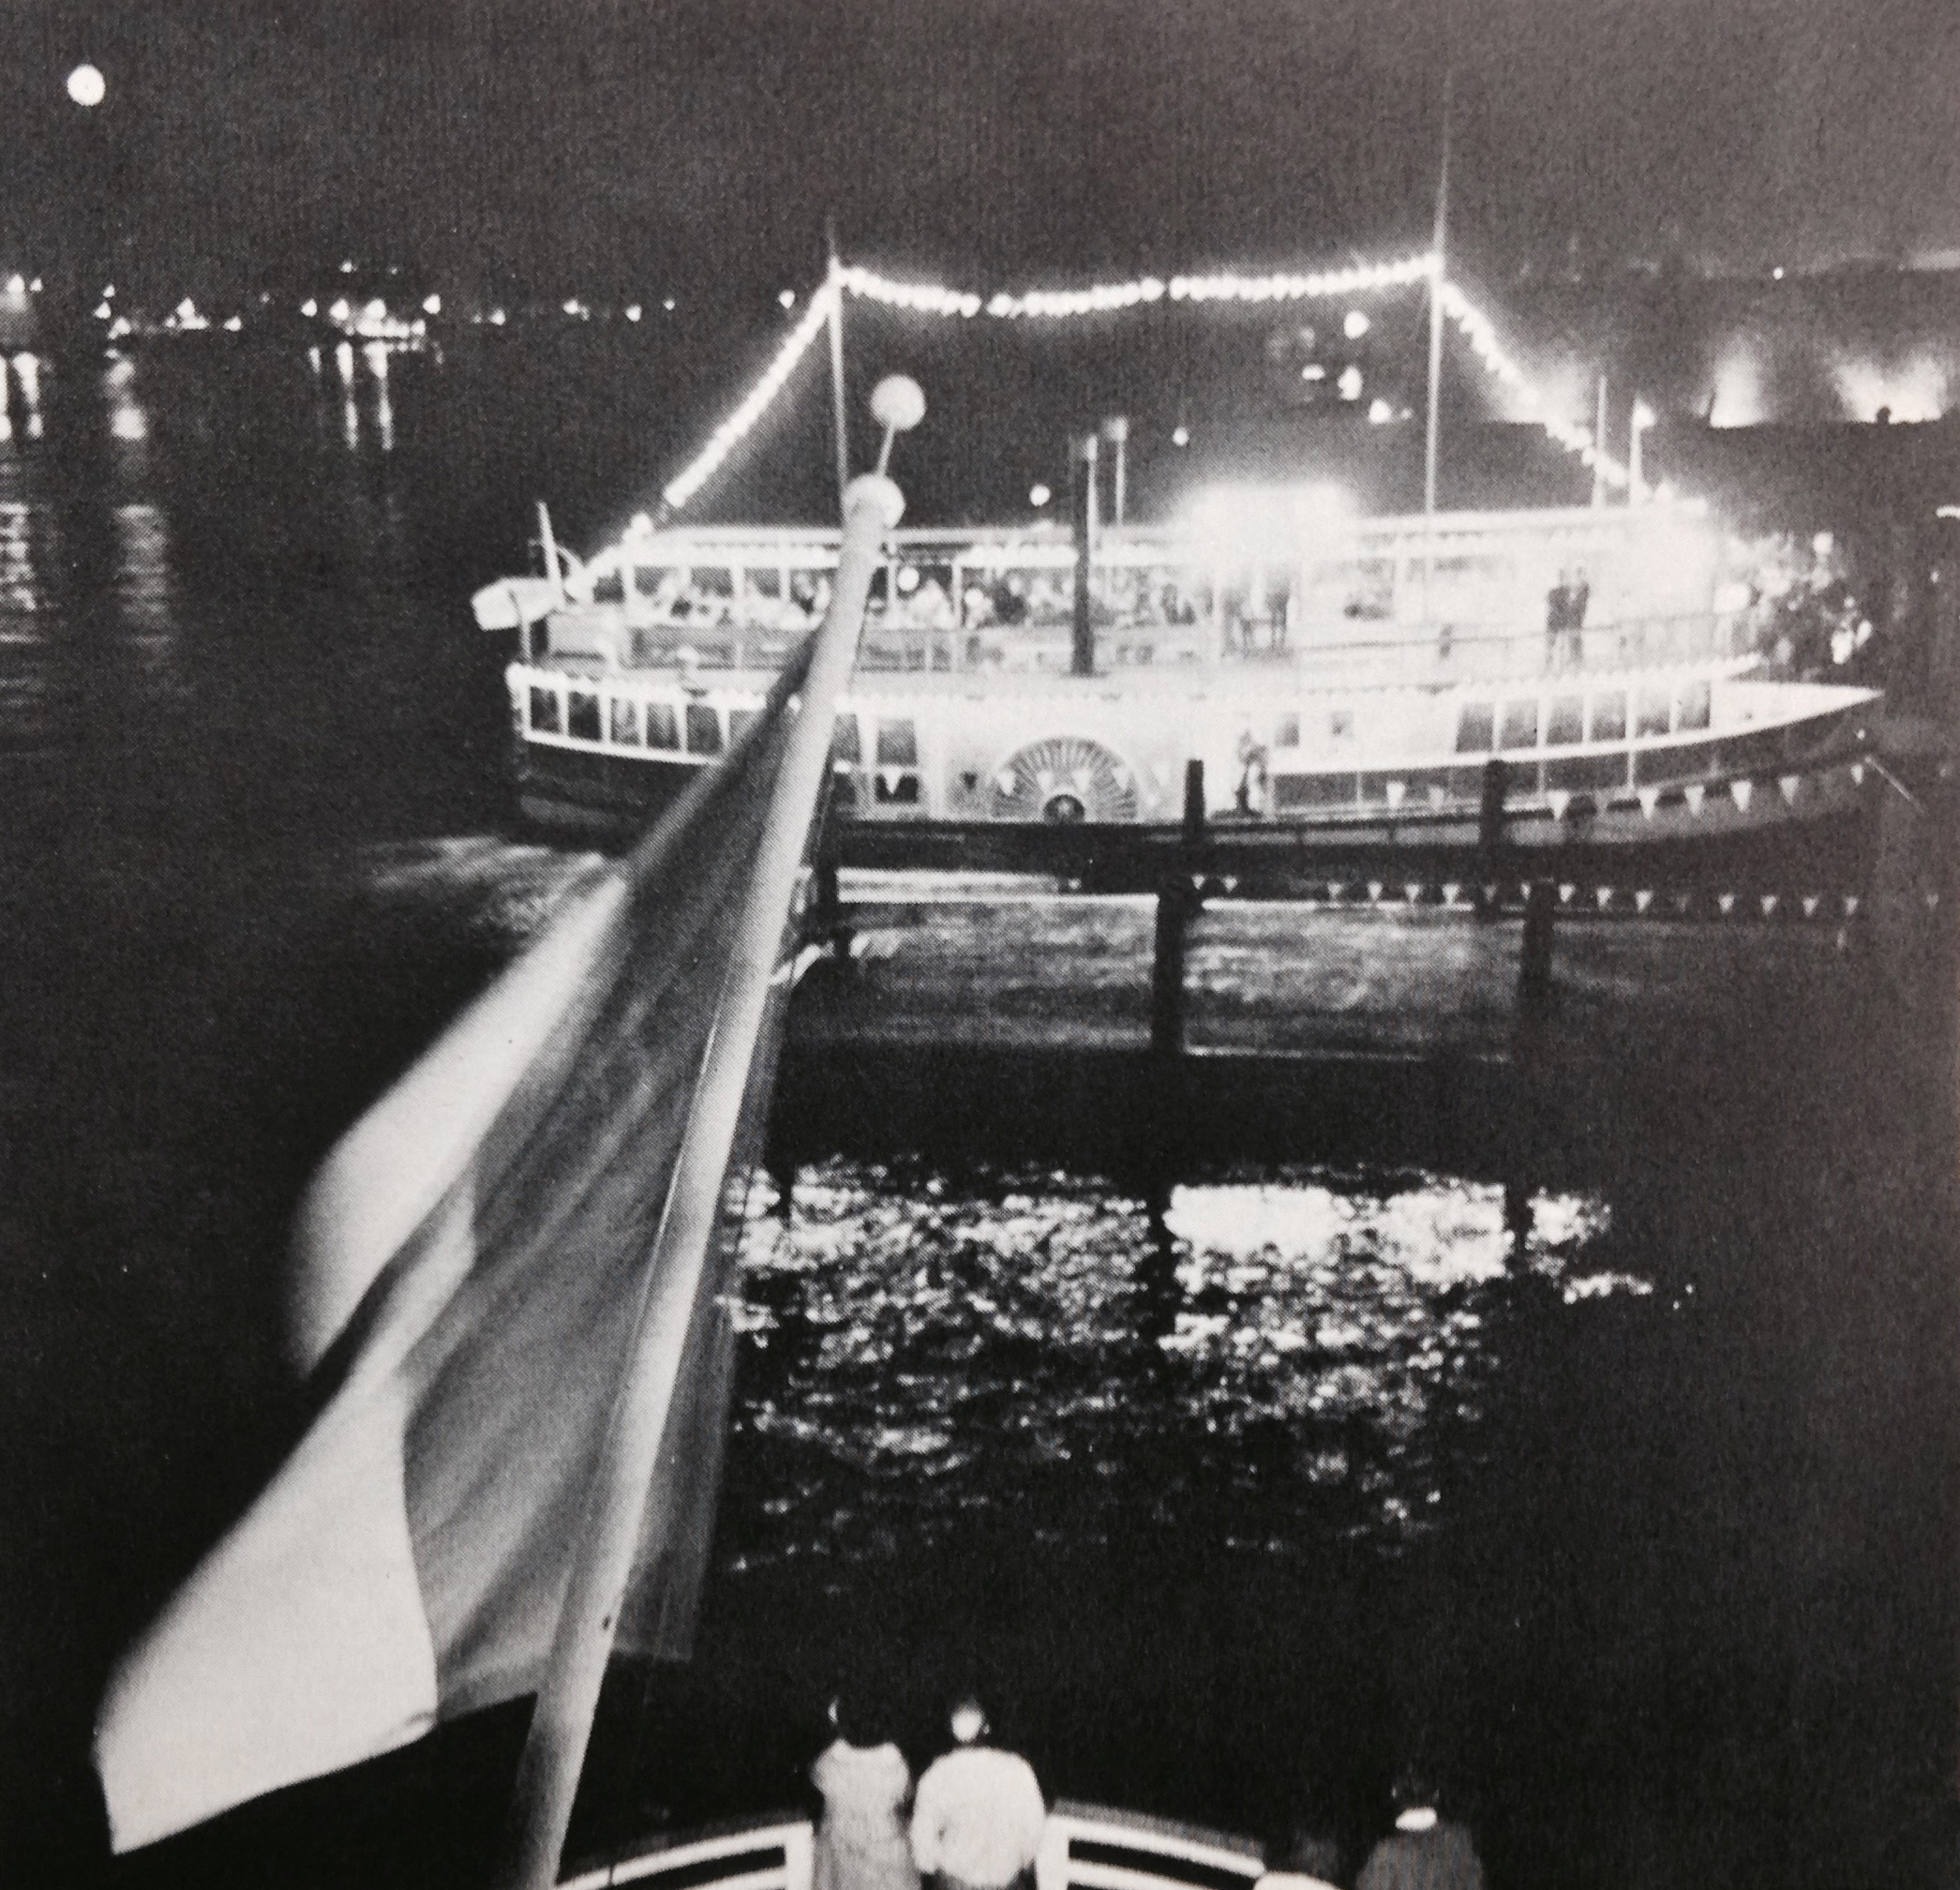 In the evening the S. S. Princess Louise, an authentic sidewheeler decorated in Mississippi riverboar plush, takes off for a cocktail cruise.